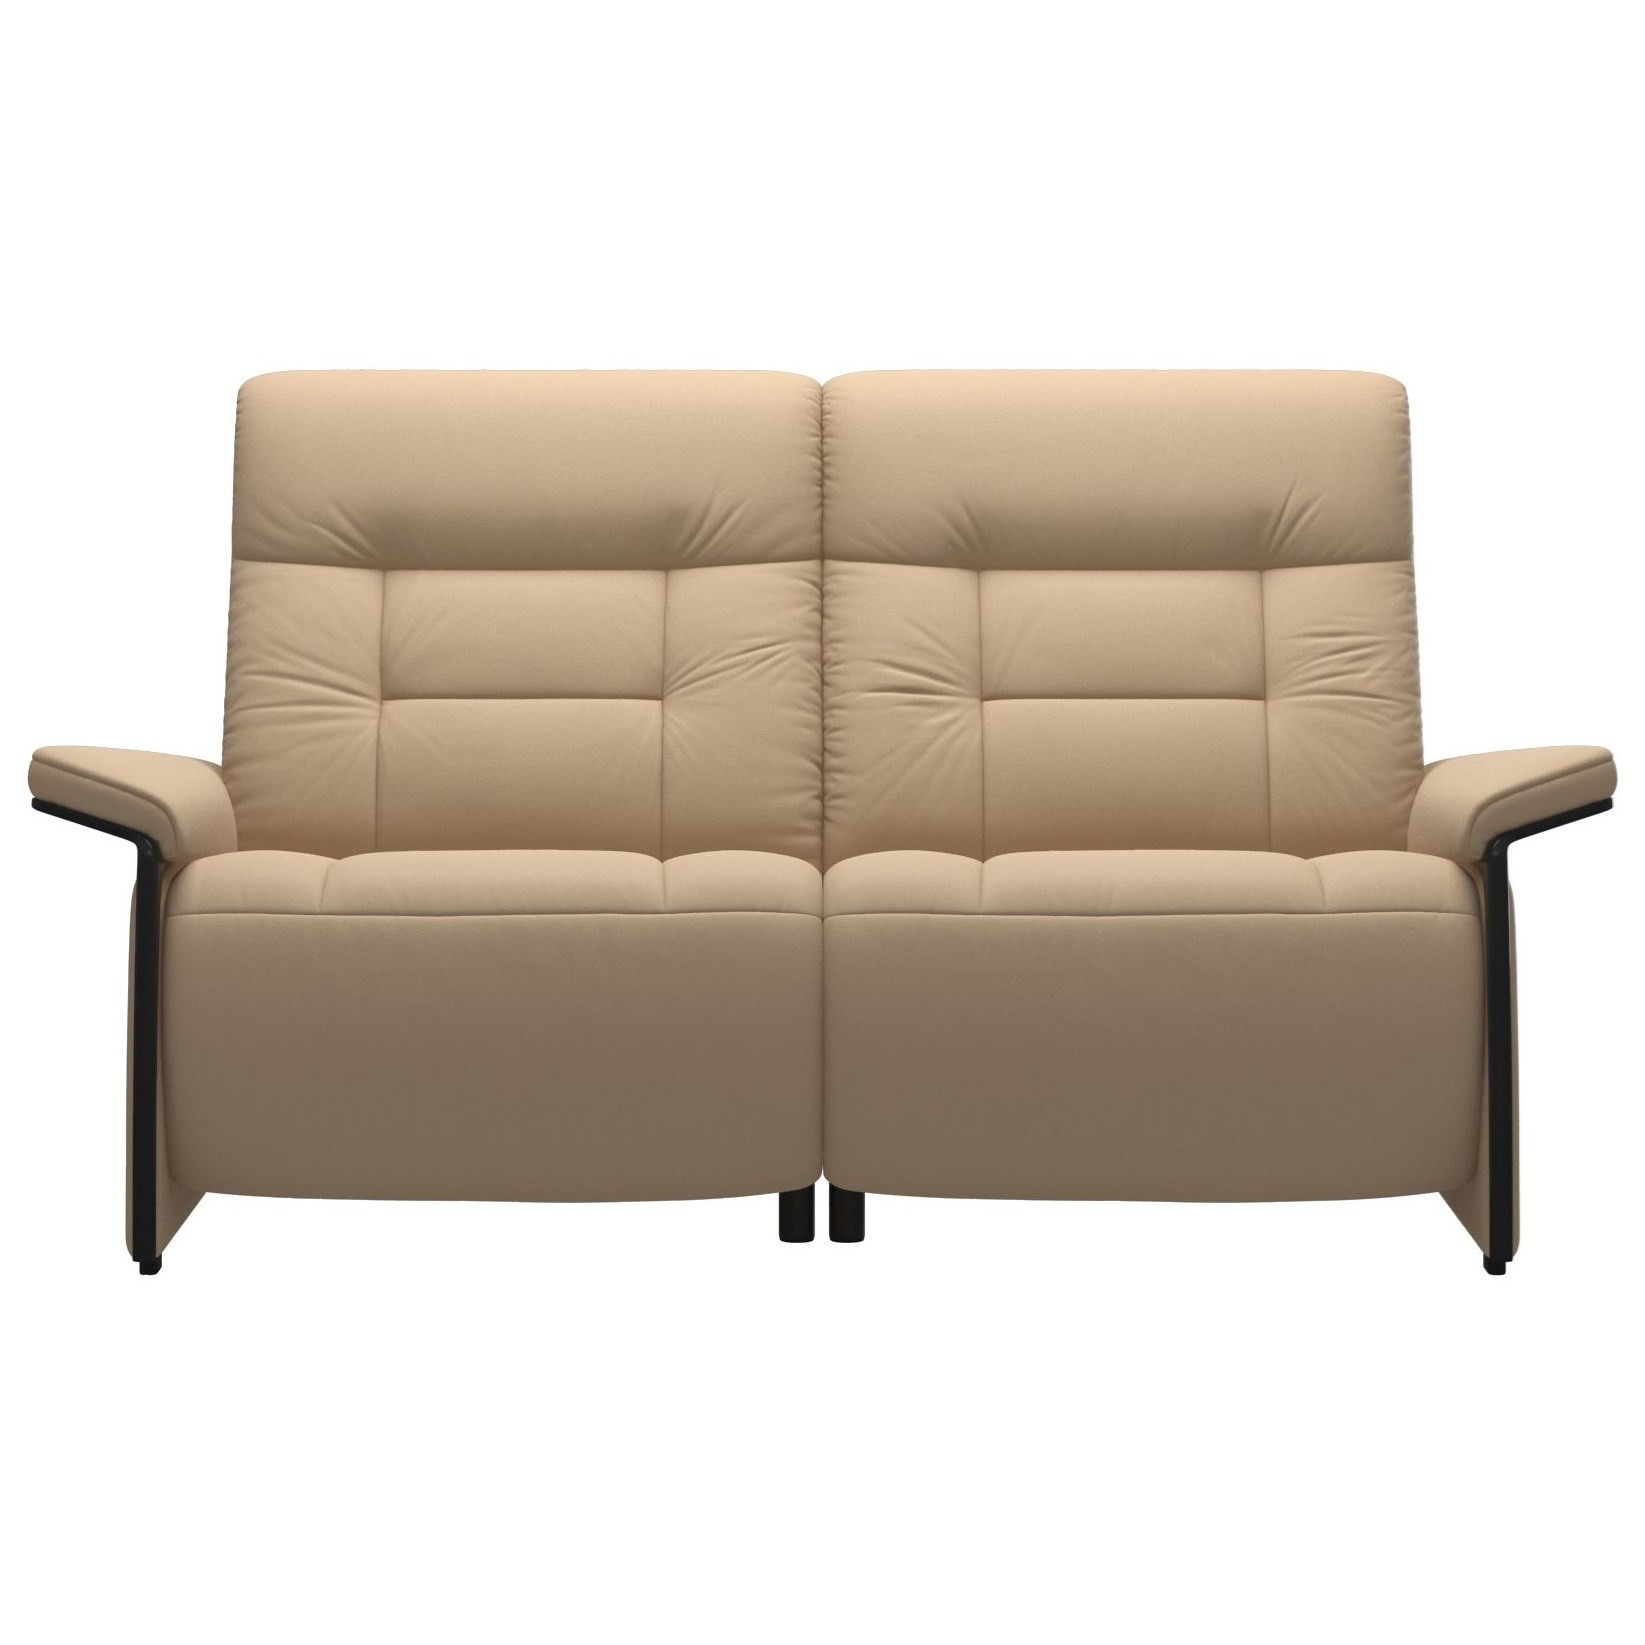 Mary Reclining 2 Seat Loveseat with Wood Arms by Stressless at Fashion Furniture